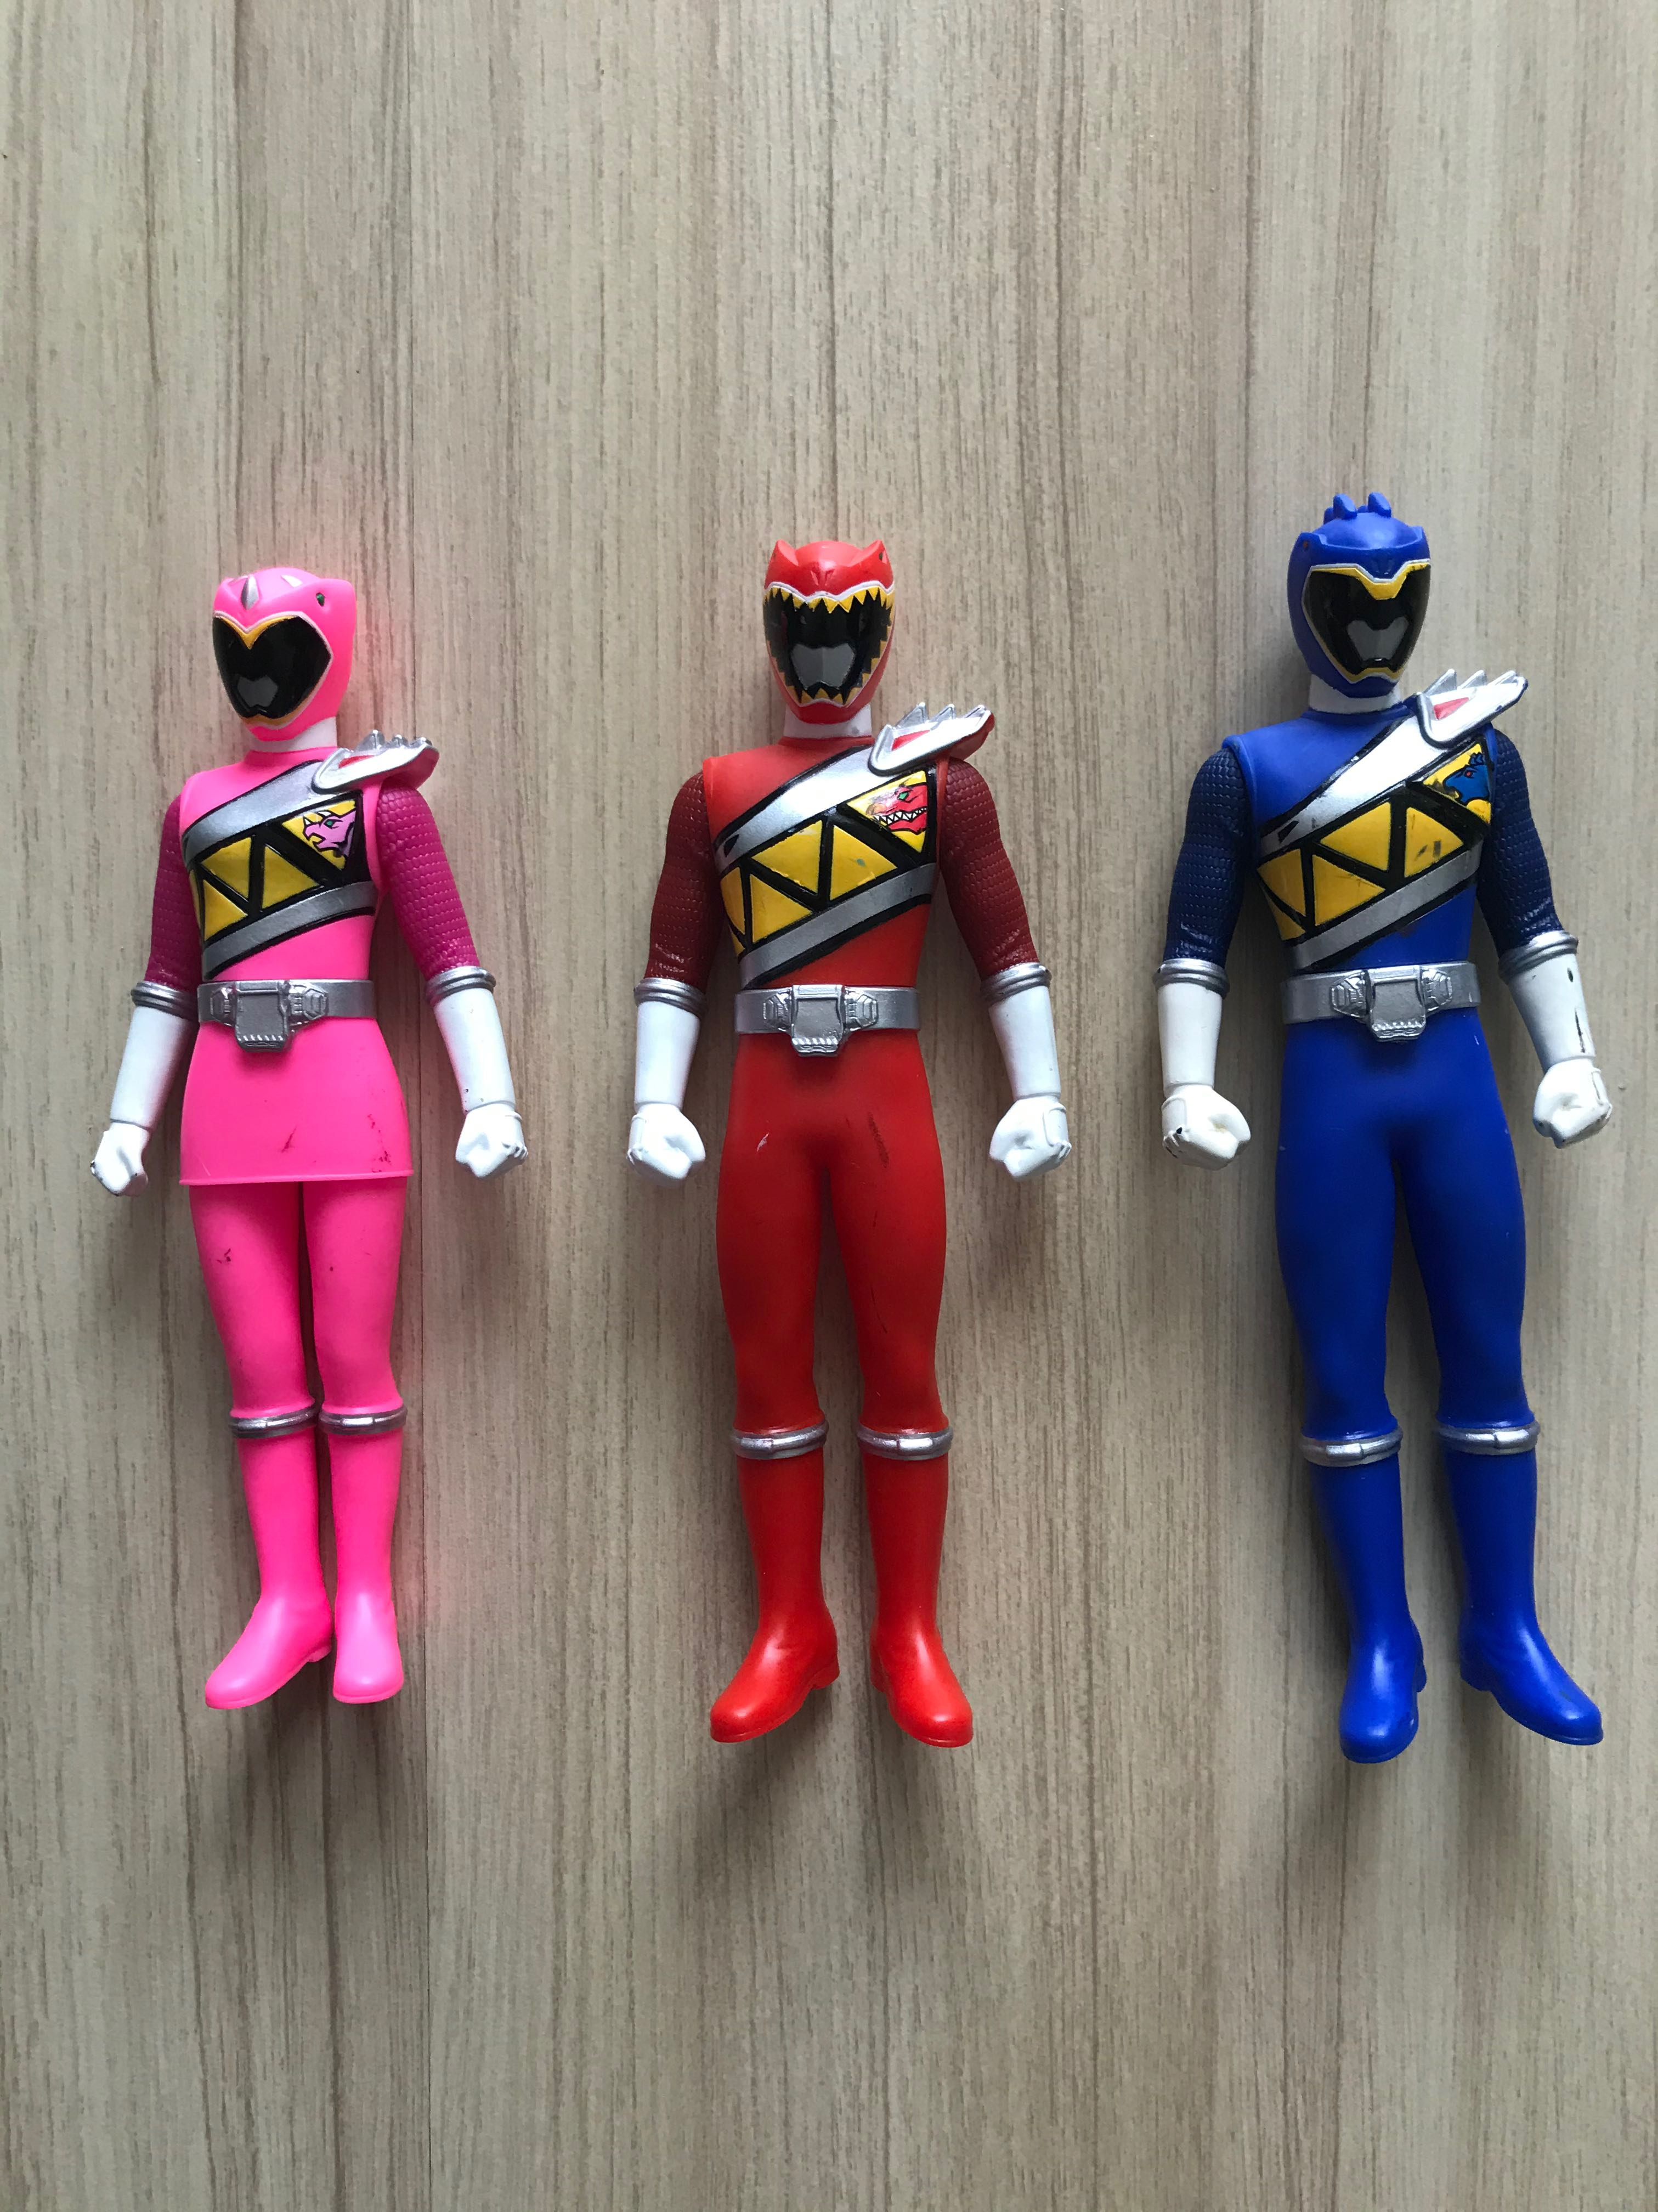 Power Rangers Dino Charge Sofubi Toys Games Action Figures Collectibles On Carousell